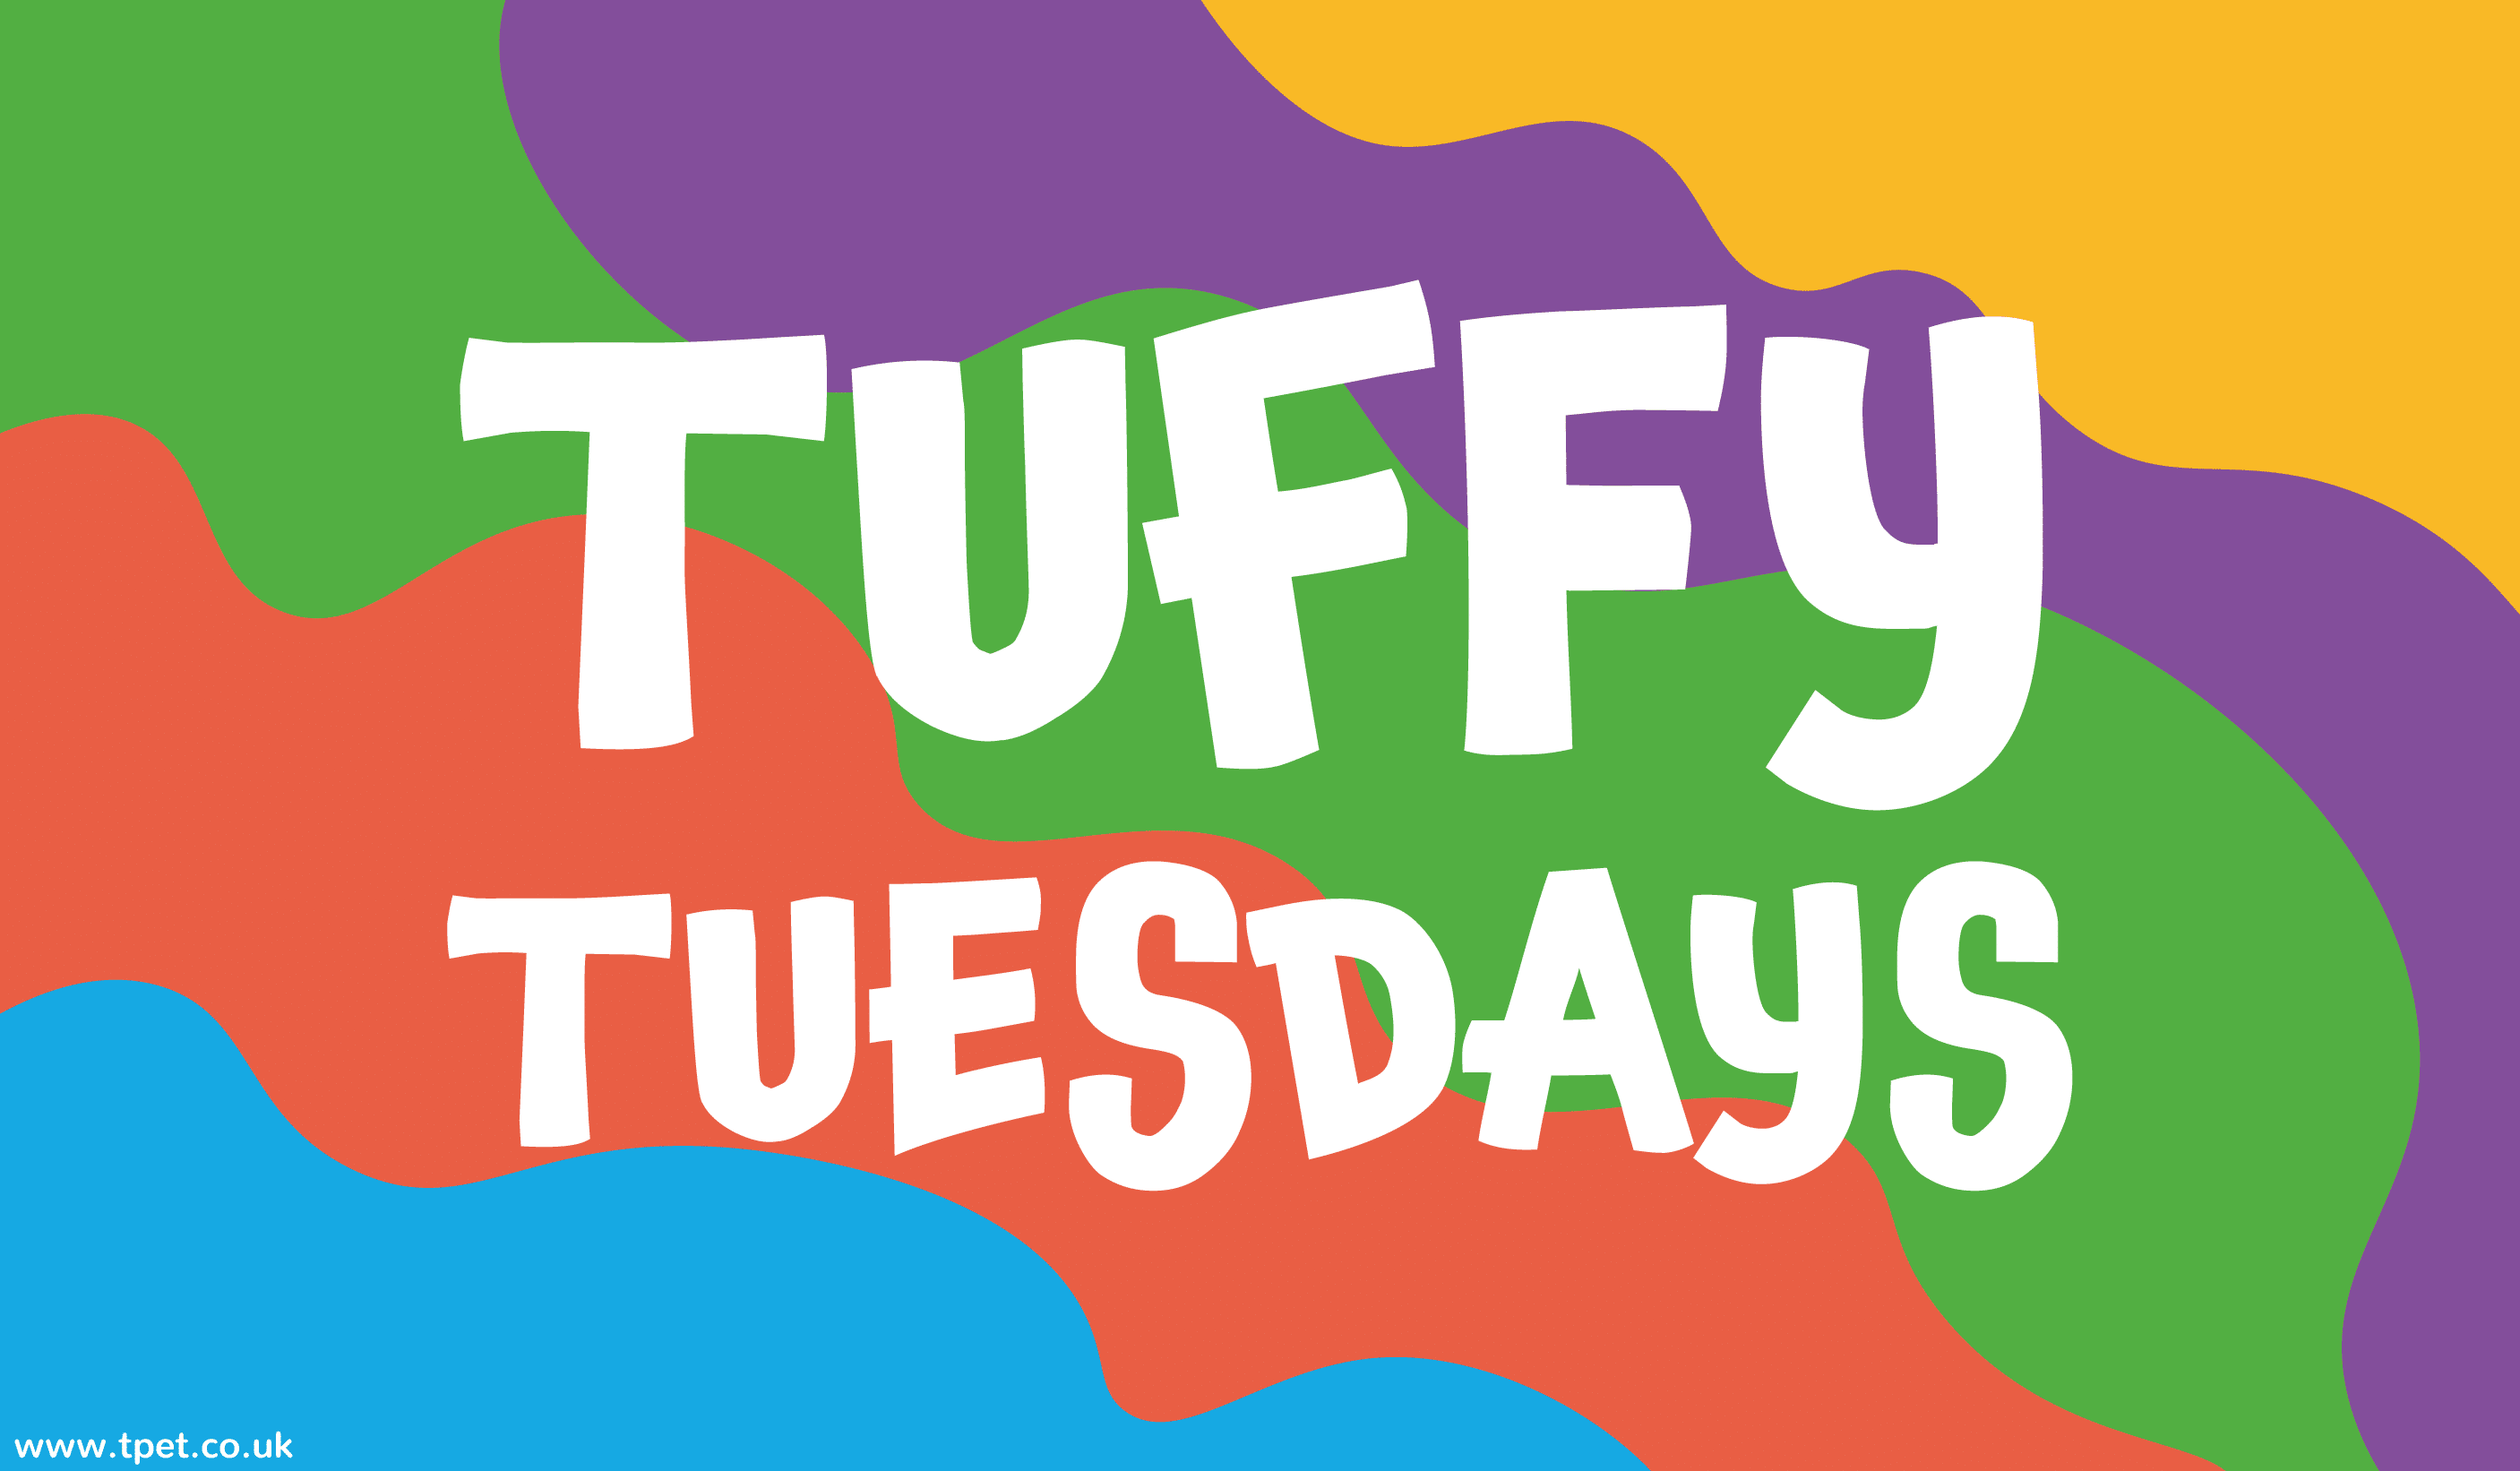 Tuffy Tuesdays